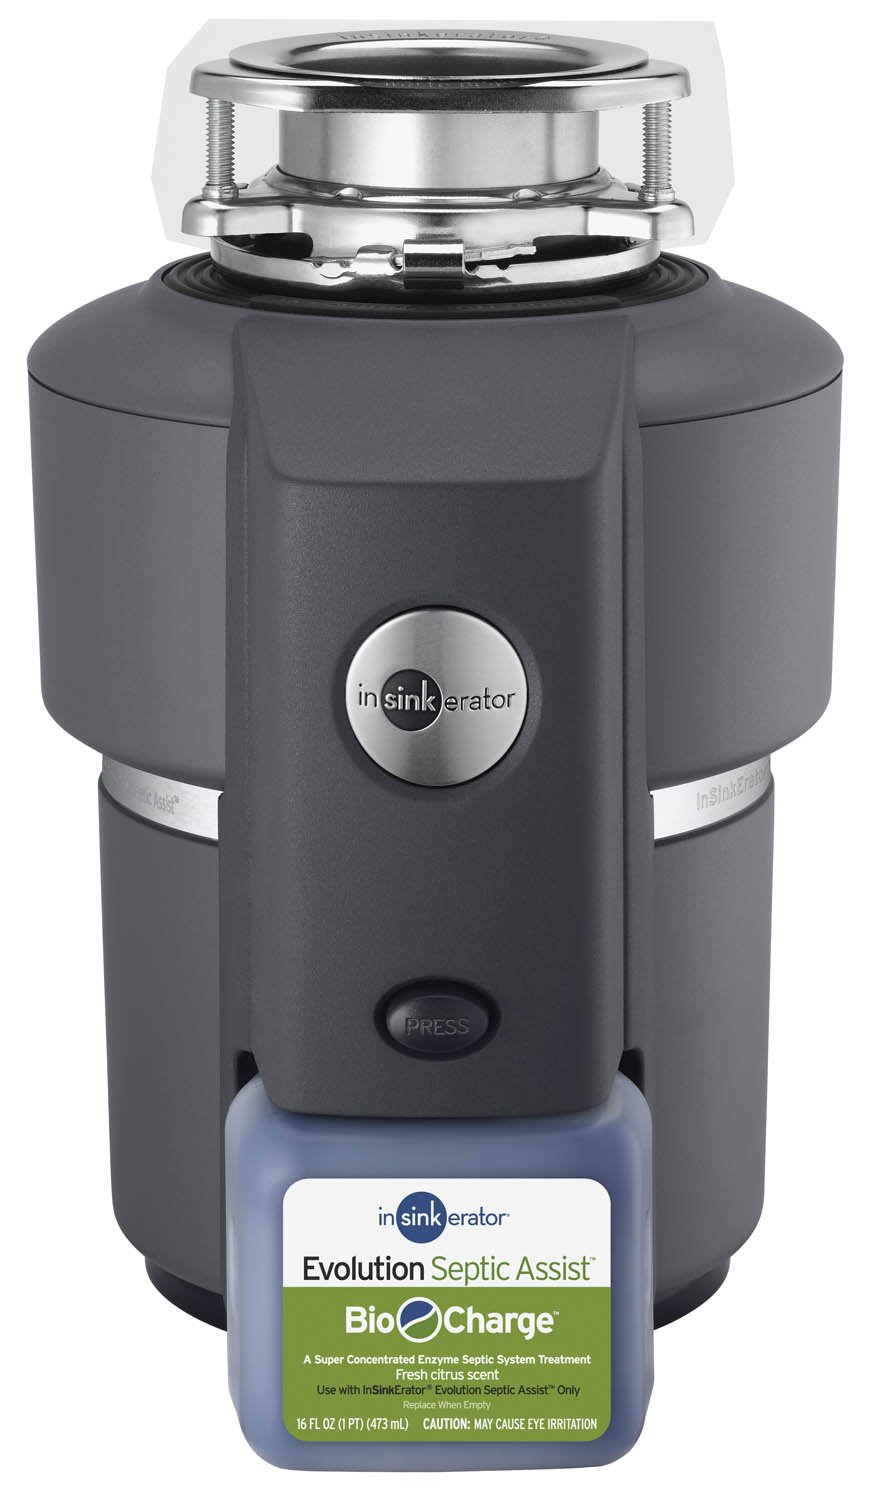 InSinkErator Evolution Septic Assist 3/4 HP Household Garbage Disposal    Food Waste Disposers   Amazon.com